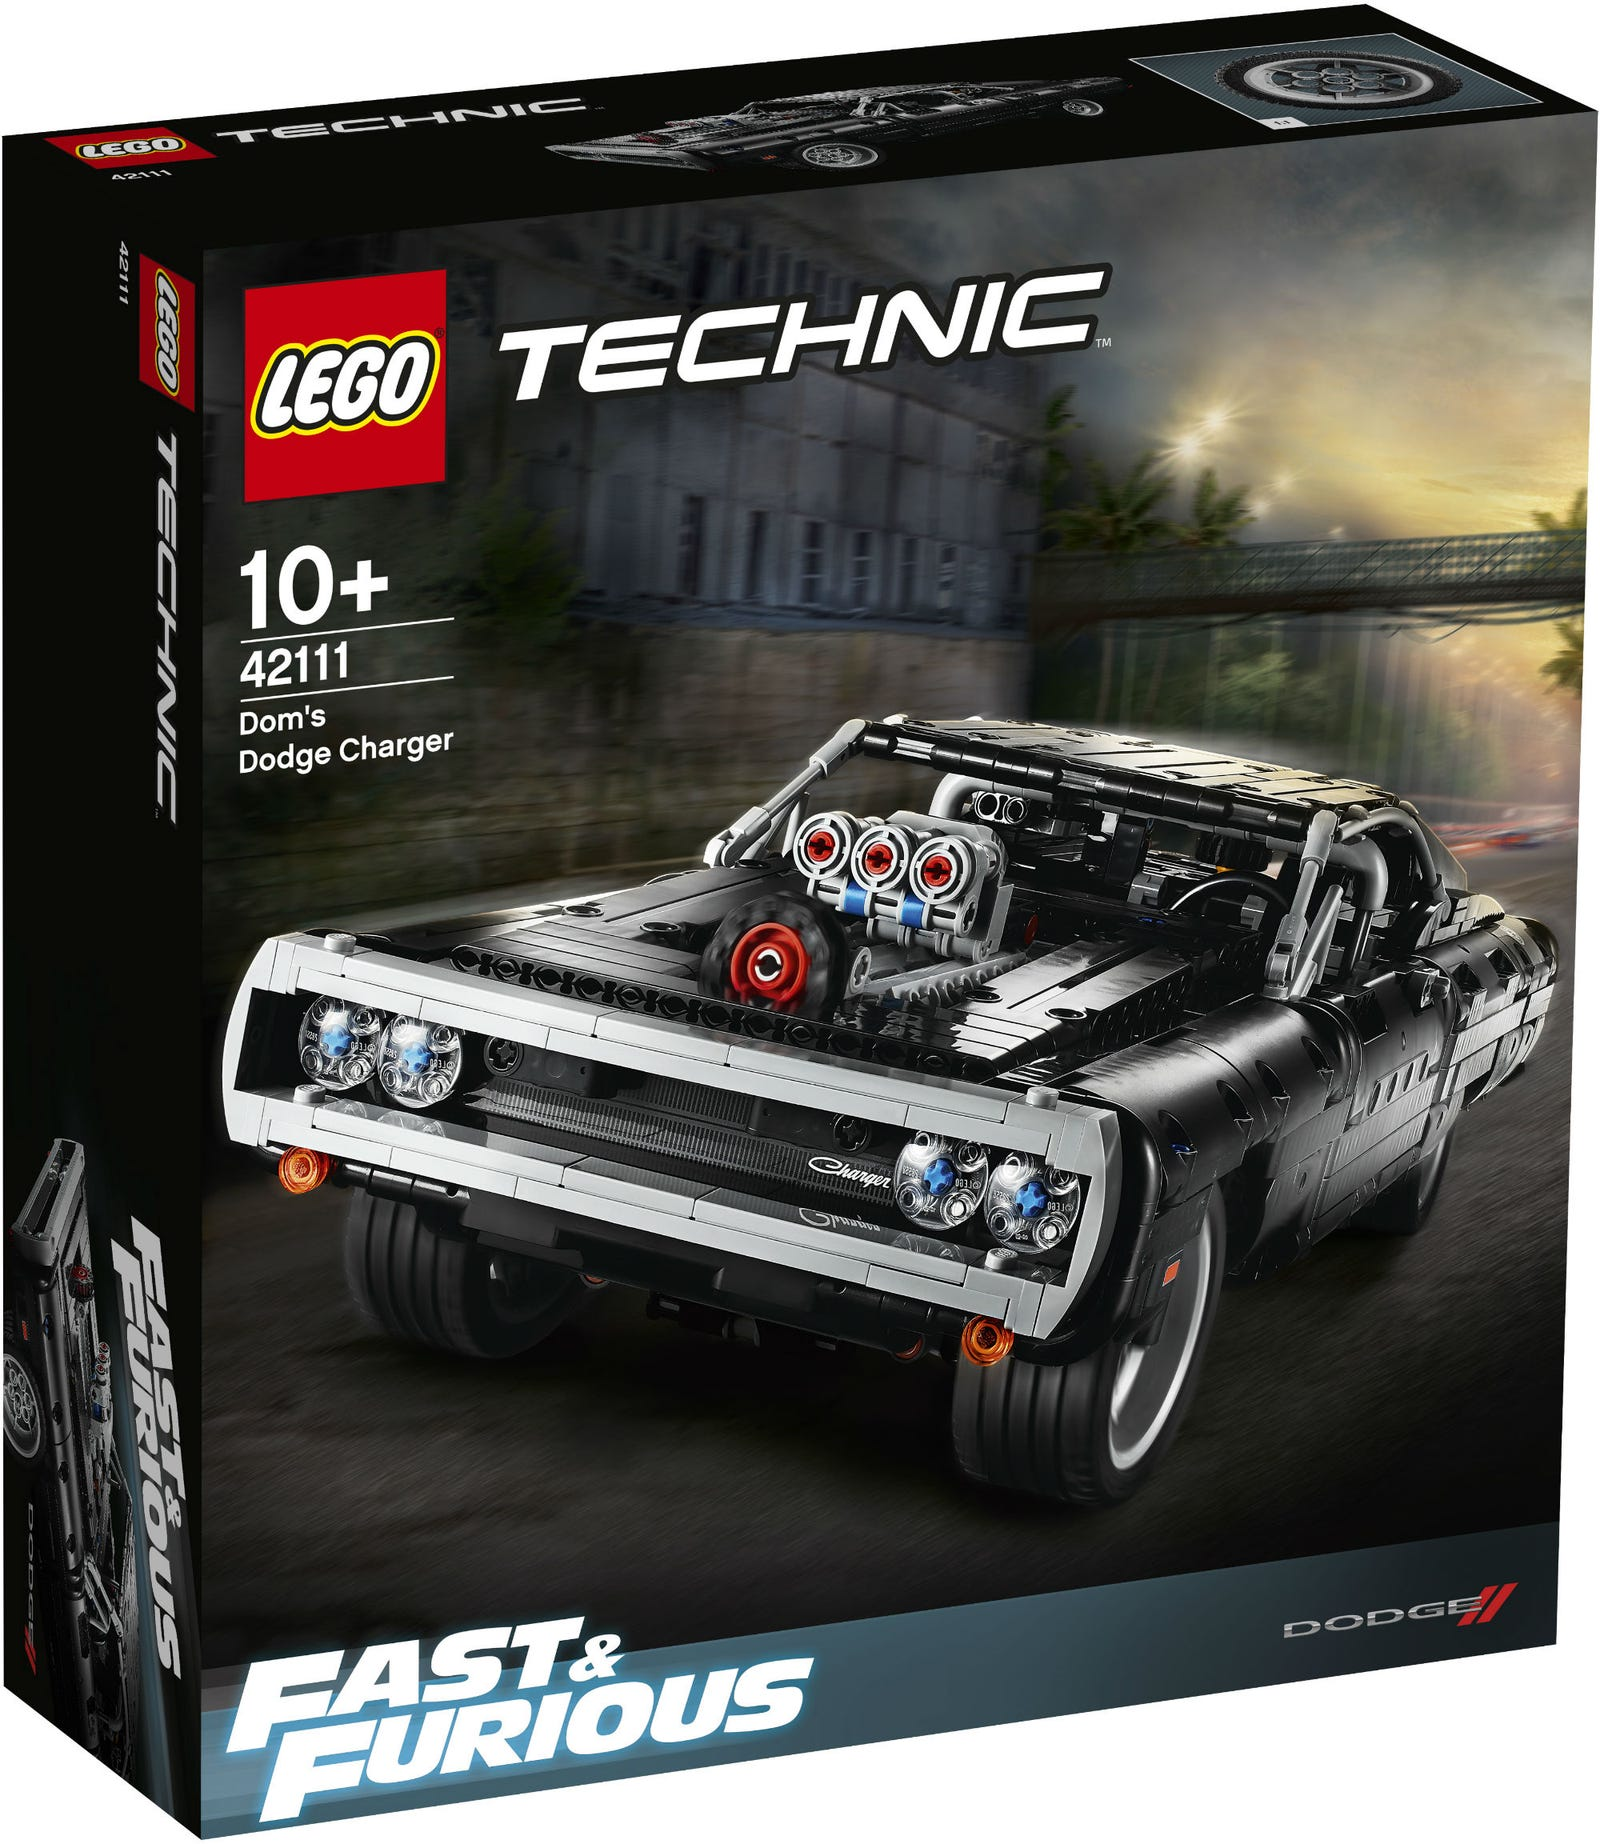 Illustration for article titled iFast and Furious/i Joins the Lego Family With Doms Dodge Charger